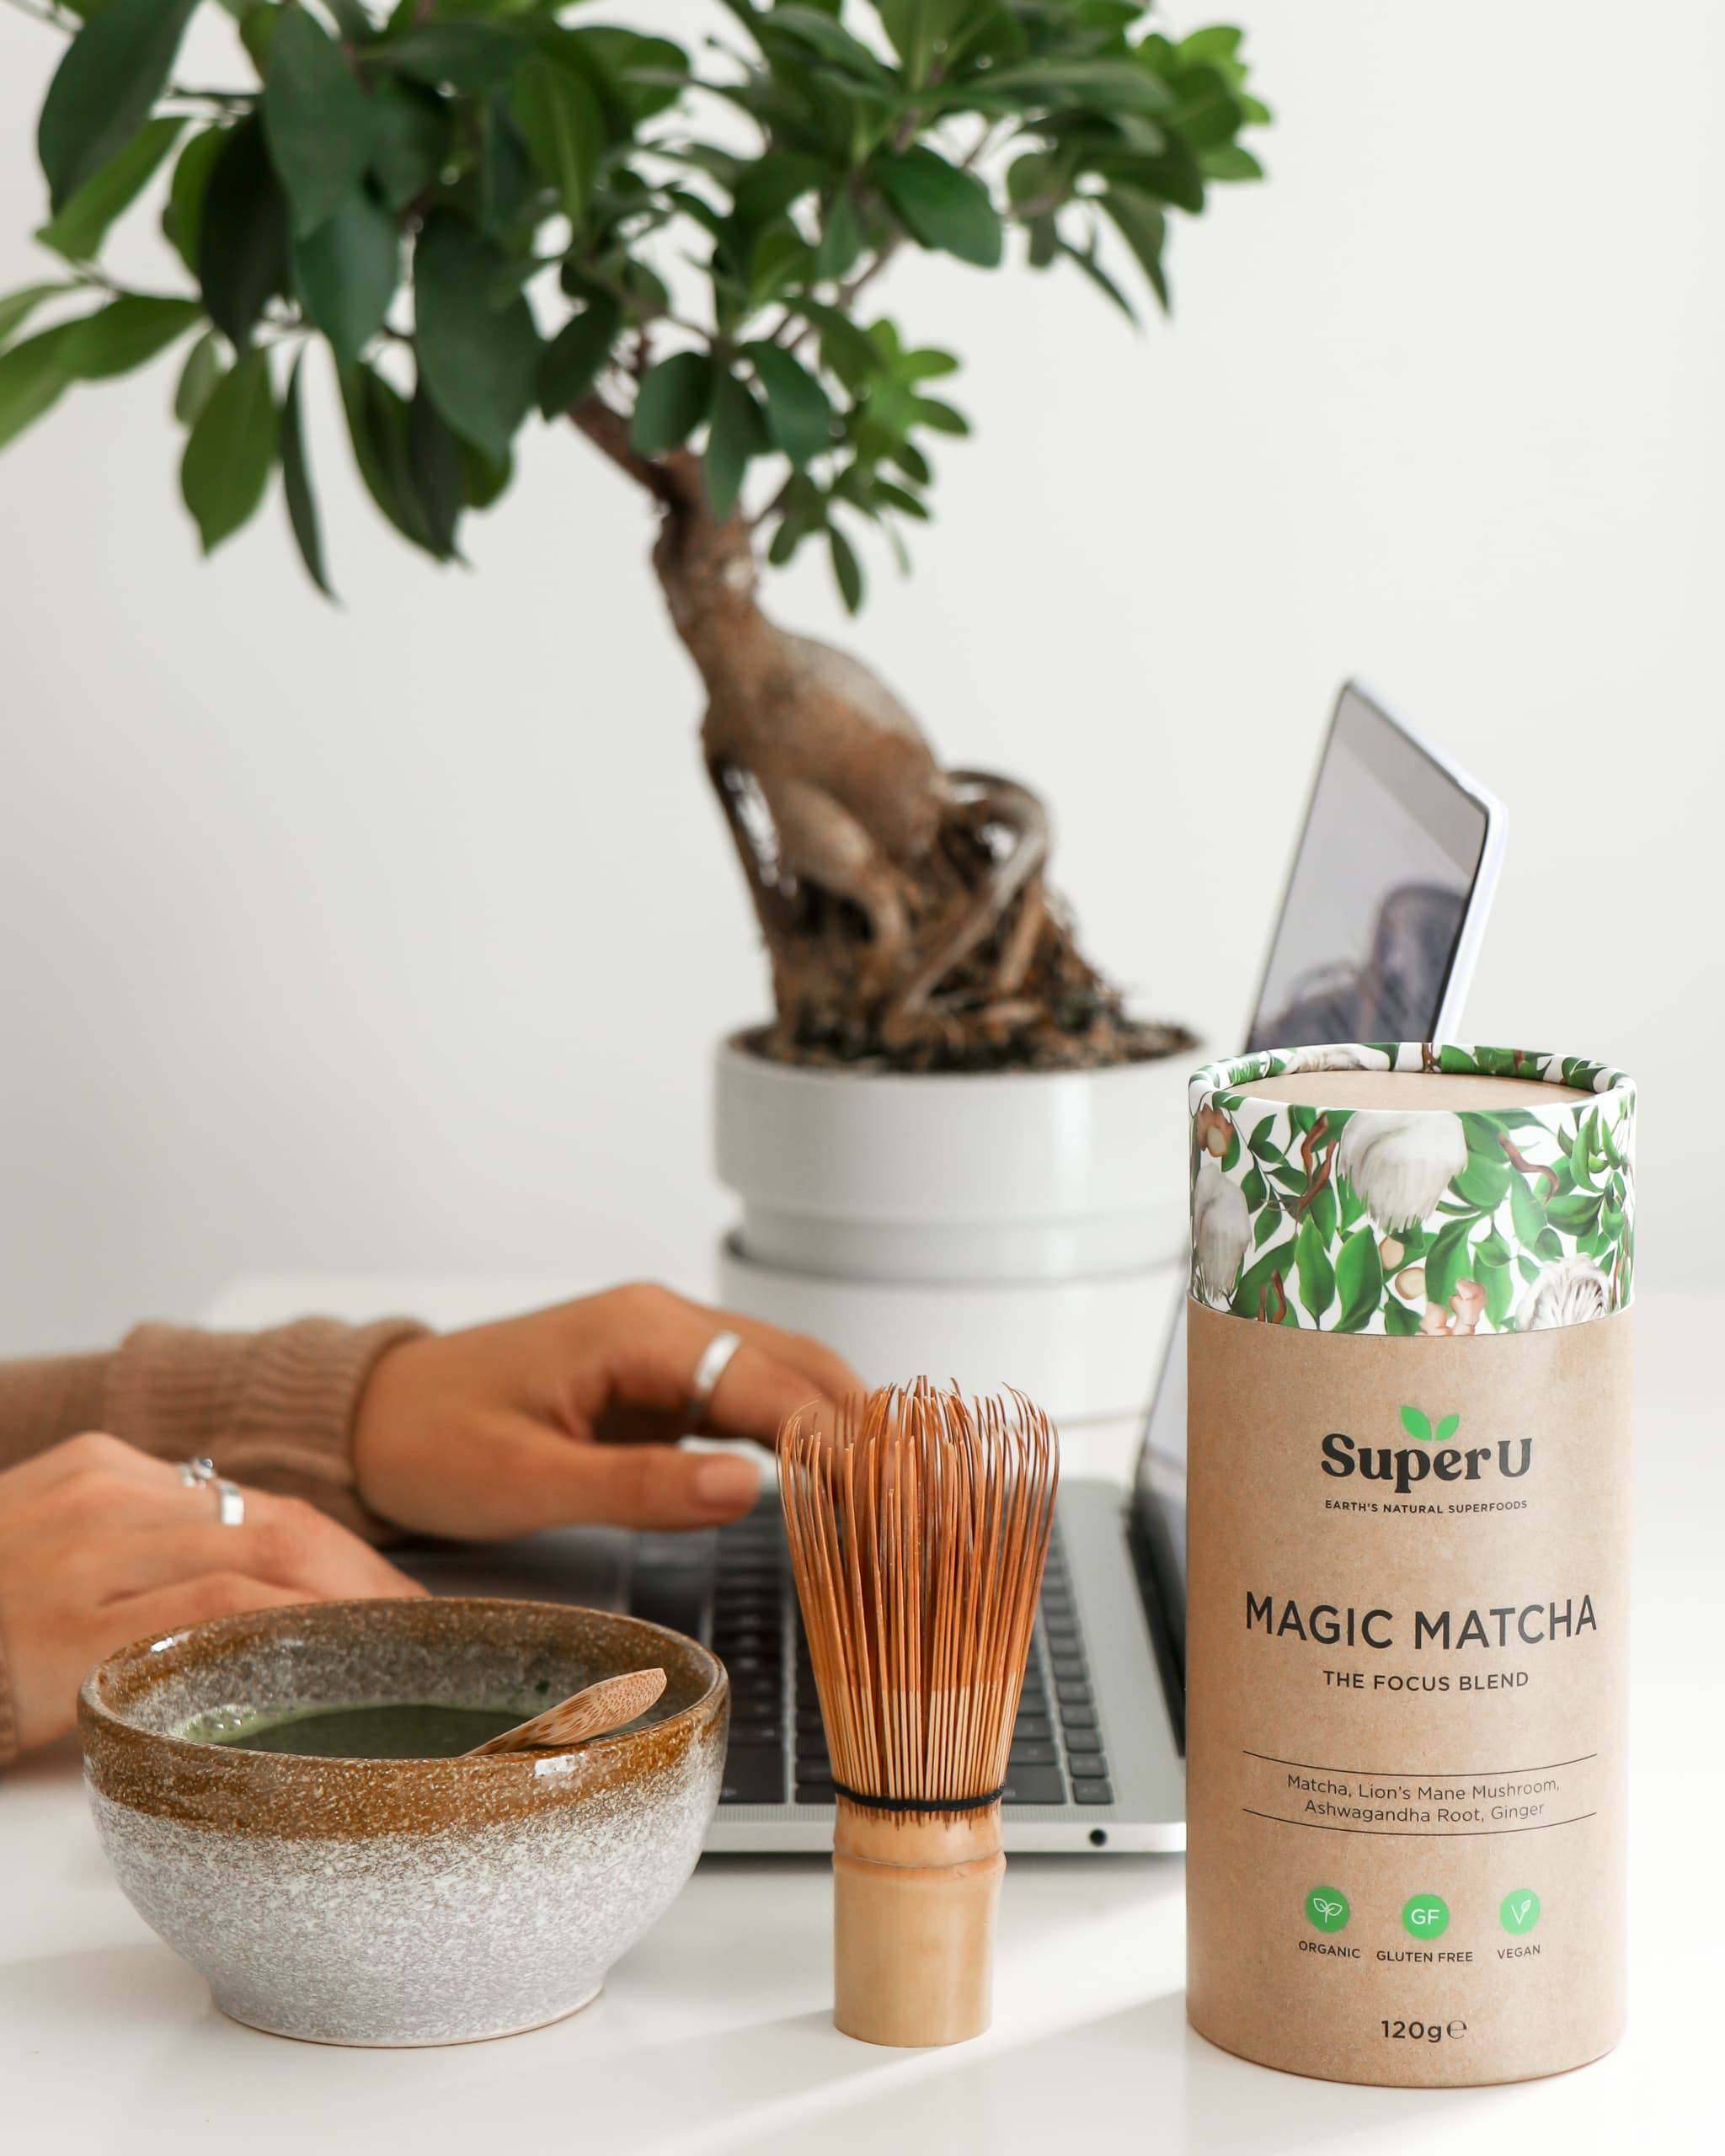 Magic Matcha green tea drink made using the focus blend, a source of adaptogens and  dual-extracted functional mushrooms